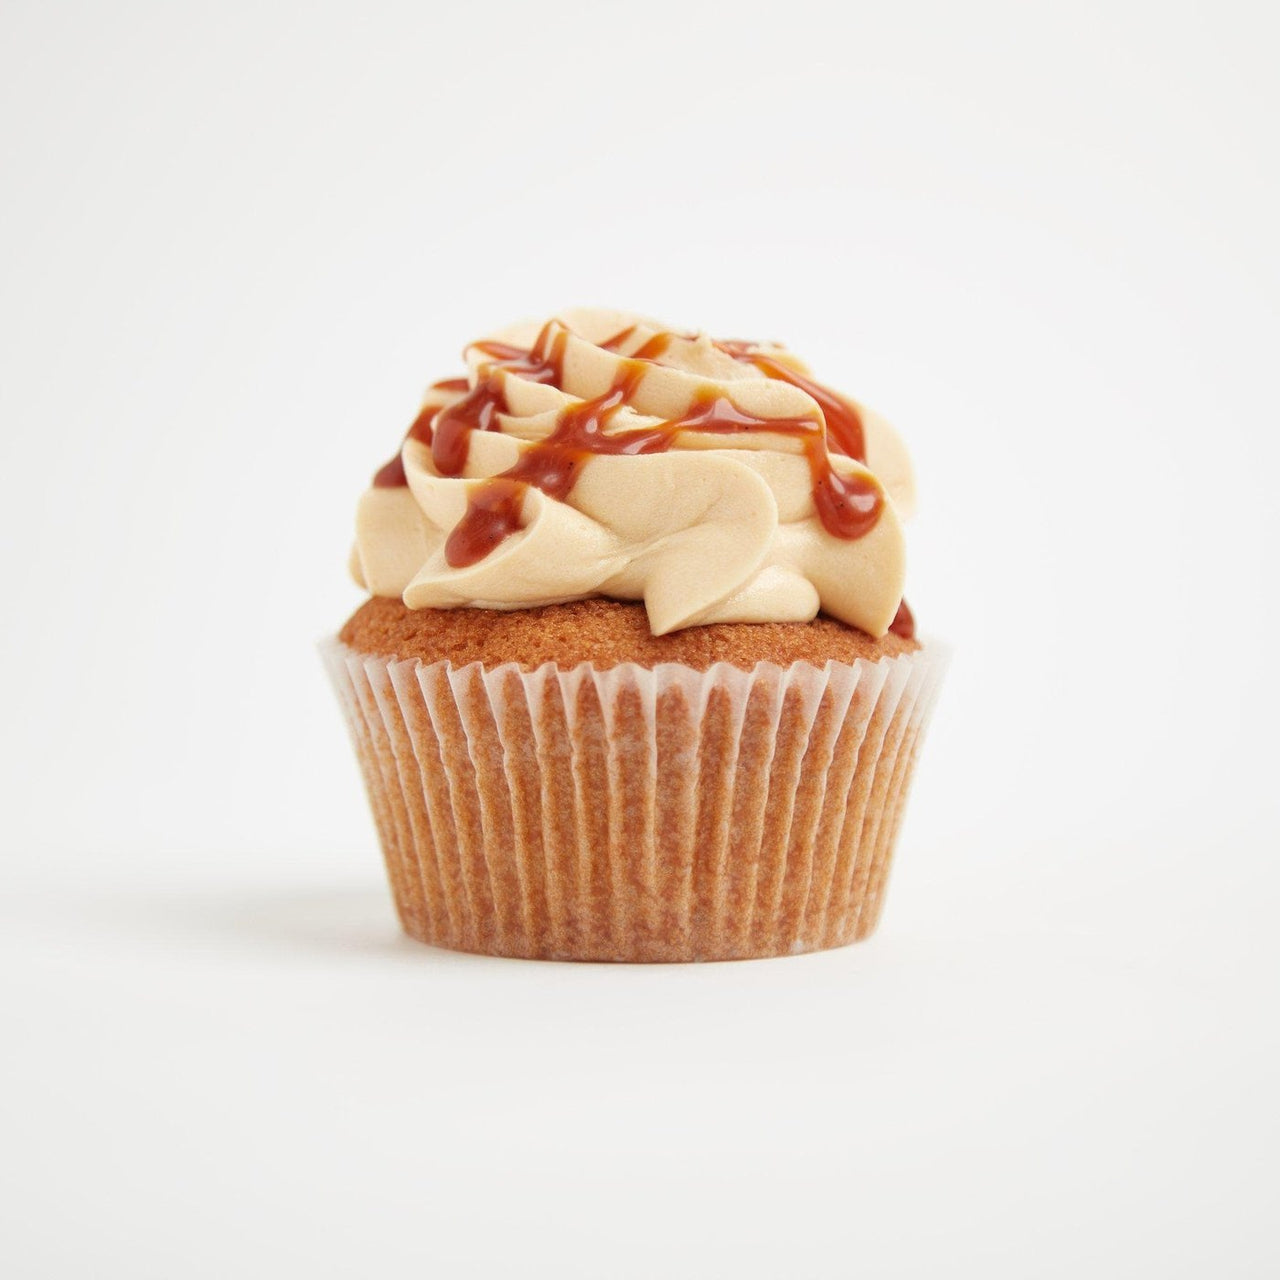 Salted Caramel Cupcakes by Crumbs & Doilies